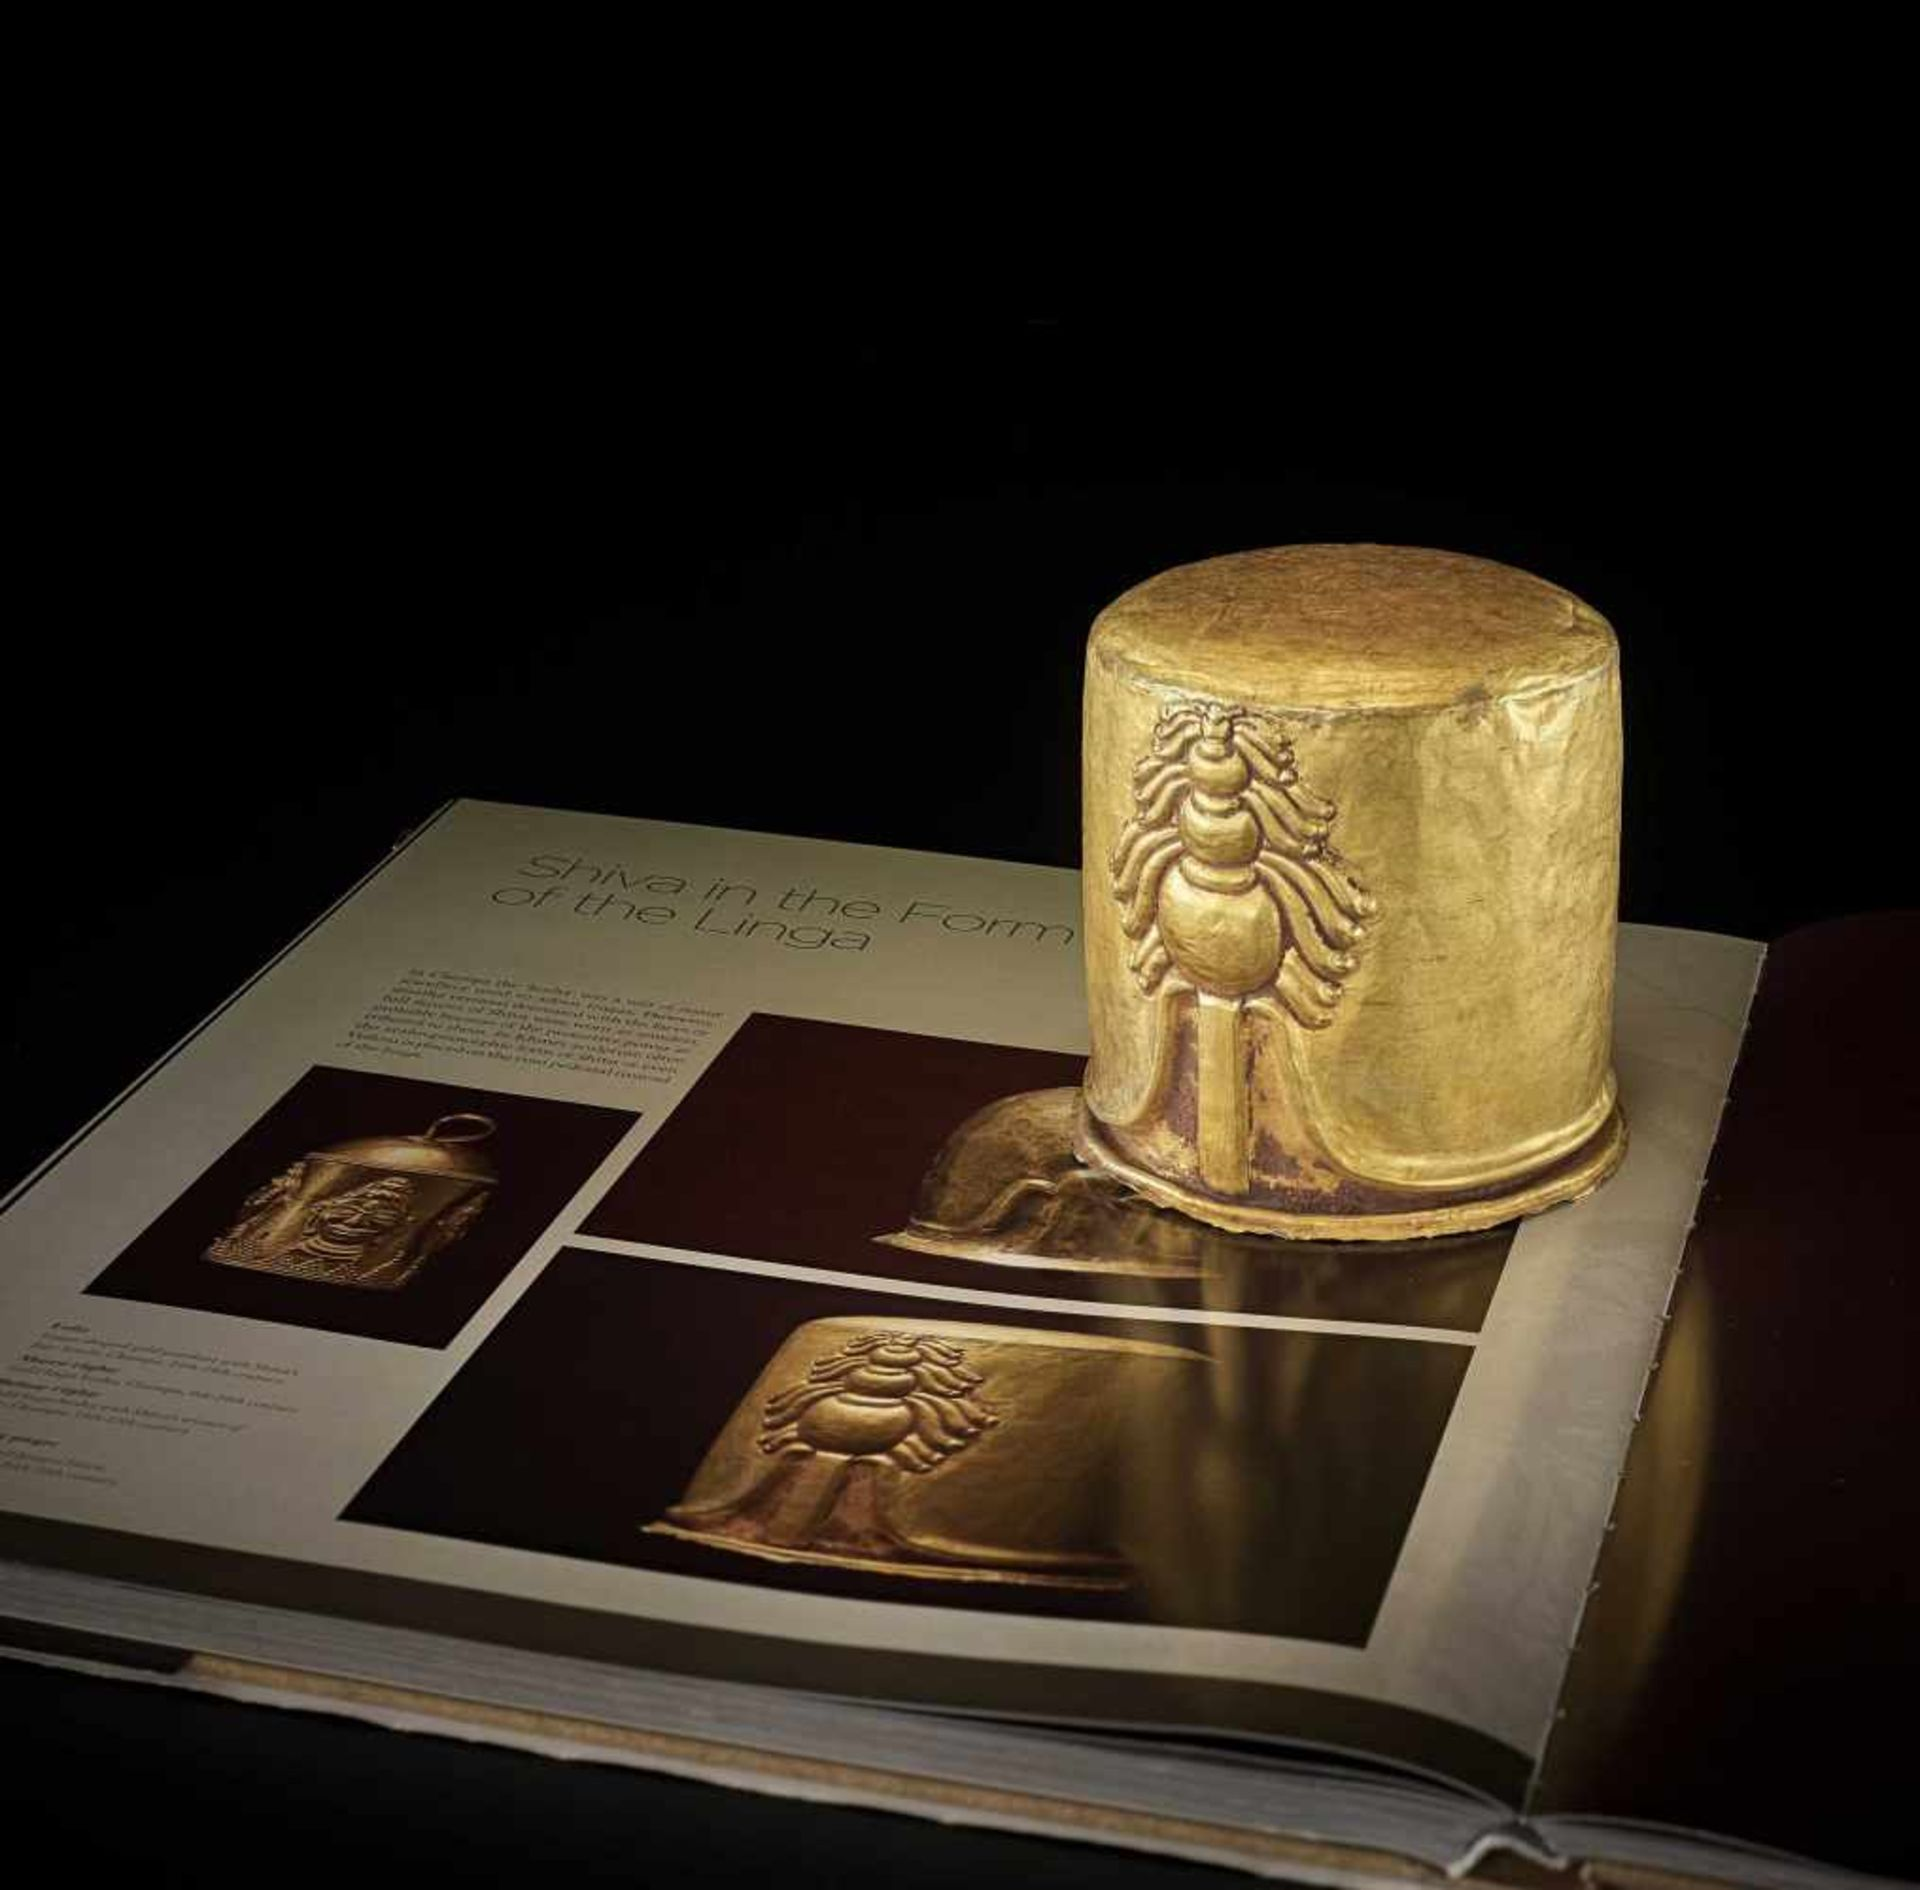 AN EXCEPTIONAL AND RARE CHAM GOLD REPOUSSÉ LINGAM WITH SHIVA'S LOCKS OF HAIR - Bild 2 aus 8